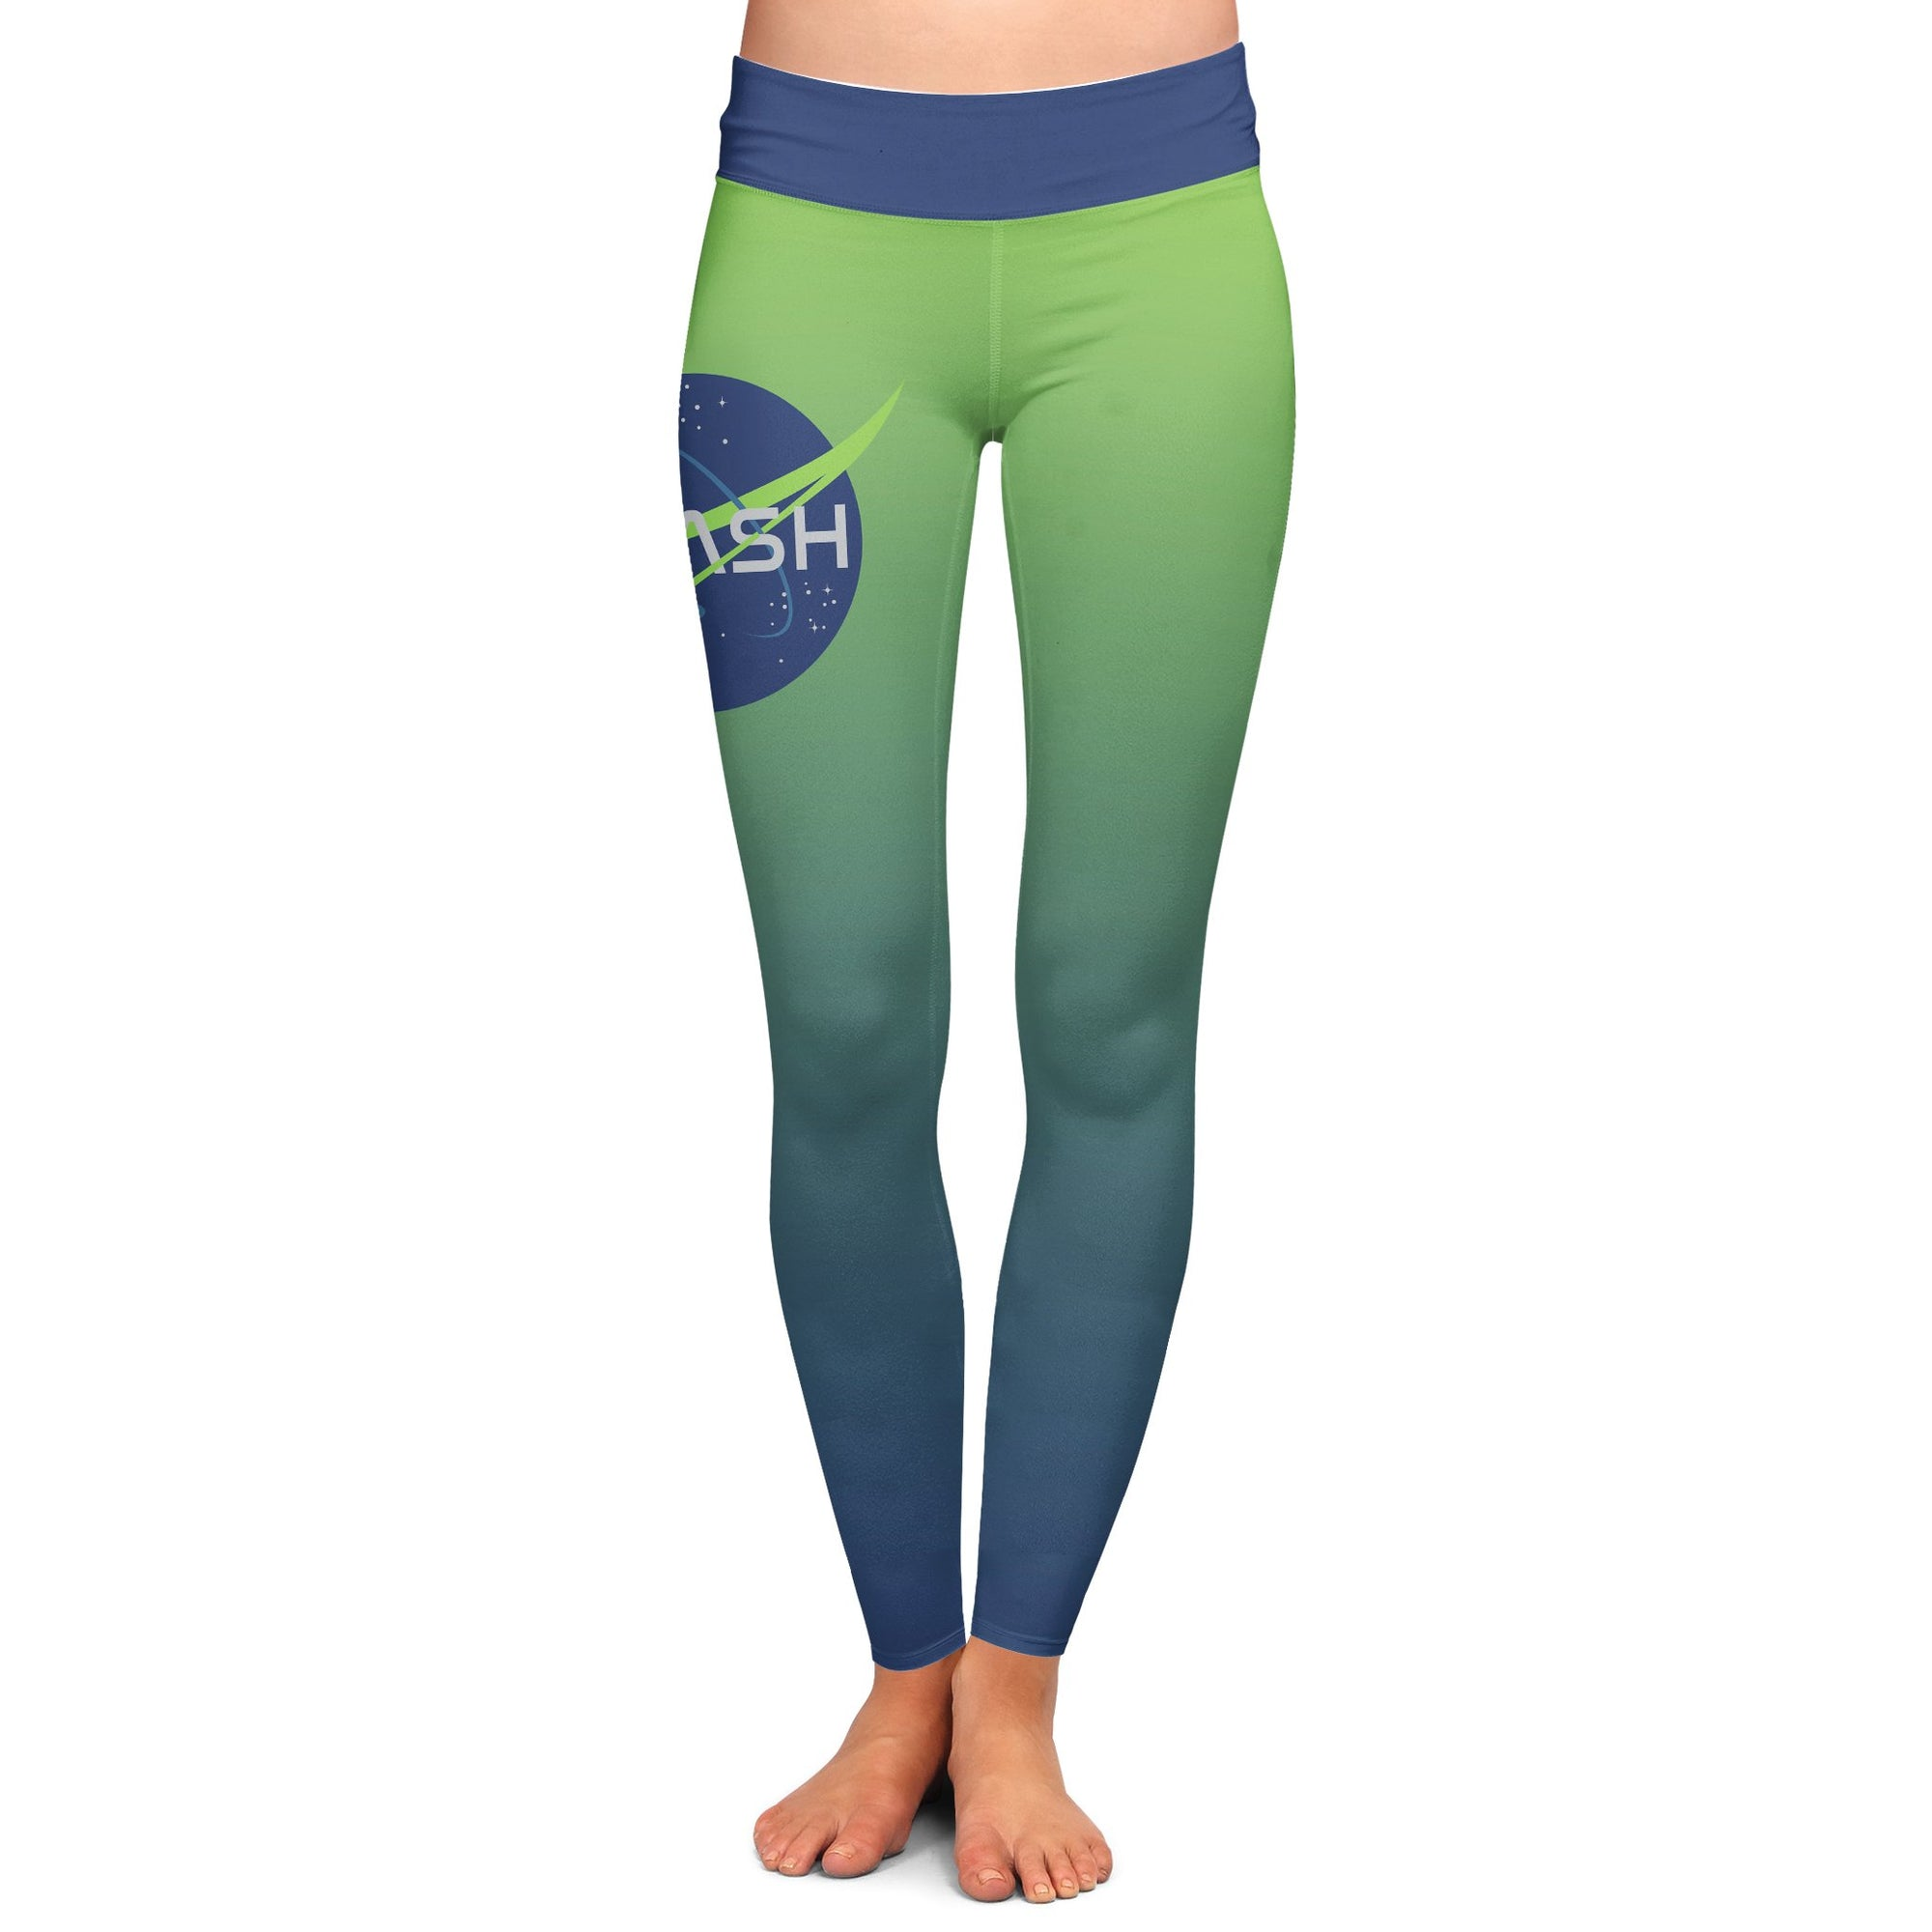 Into Space Yoga Pants | flashgordonshop.com